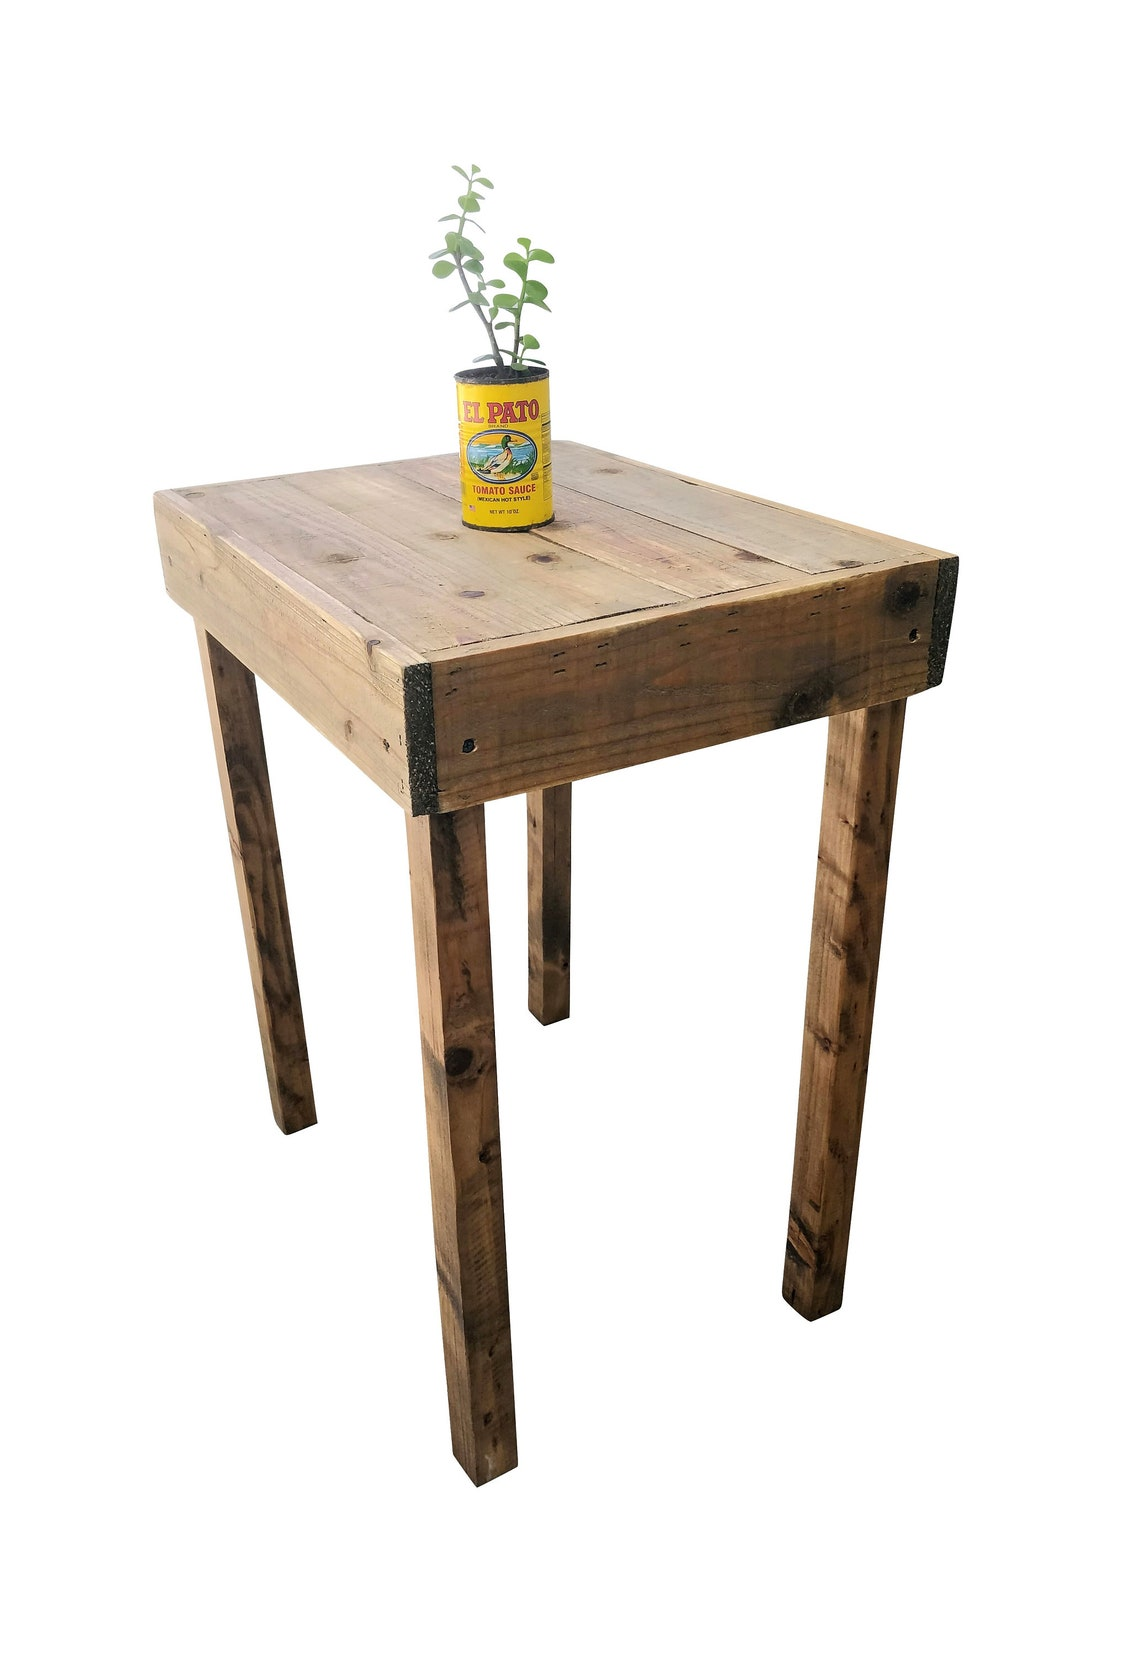 Reclaimed Wood Side Table - accent, bedroom, end table, entryway, furniture, living room, night stand, nightstand, pallet, rustic, wood